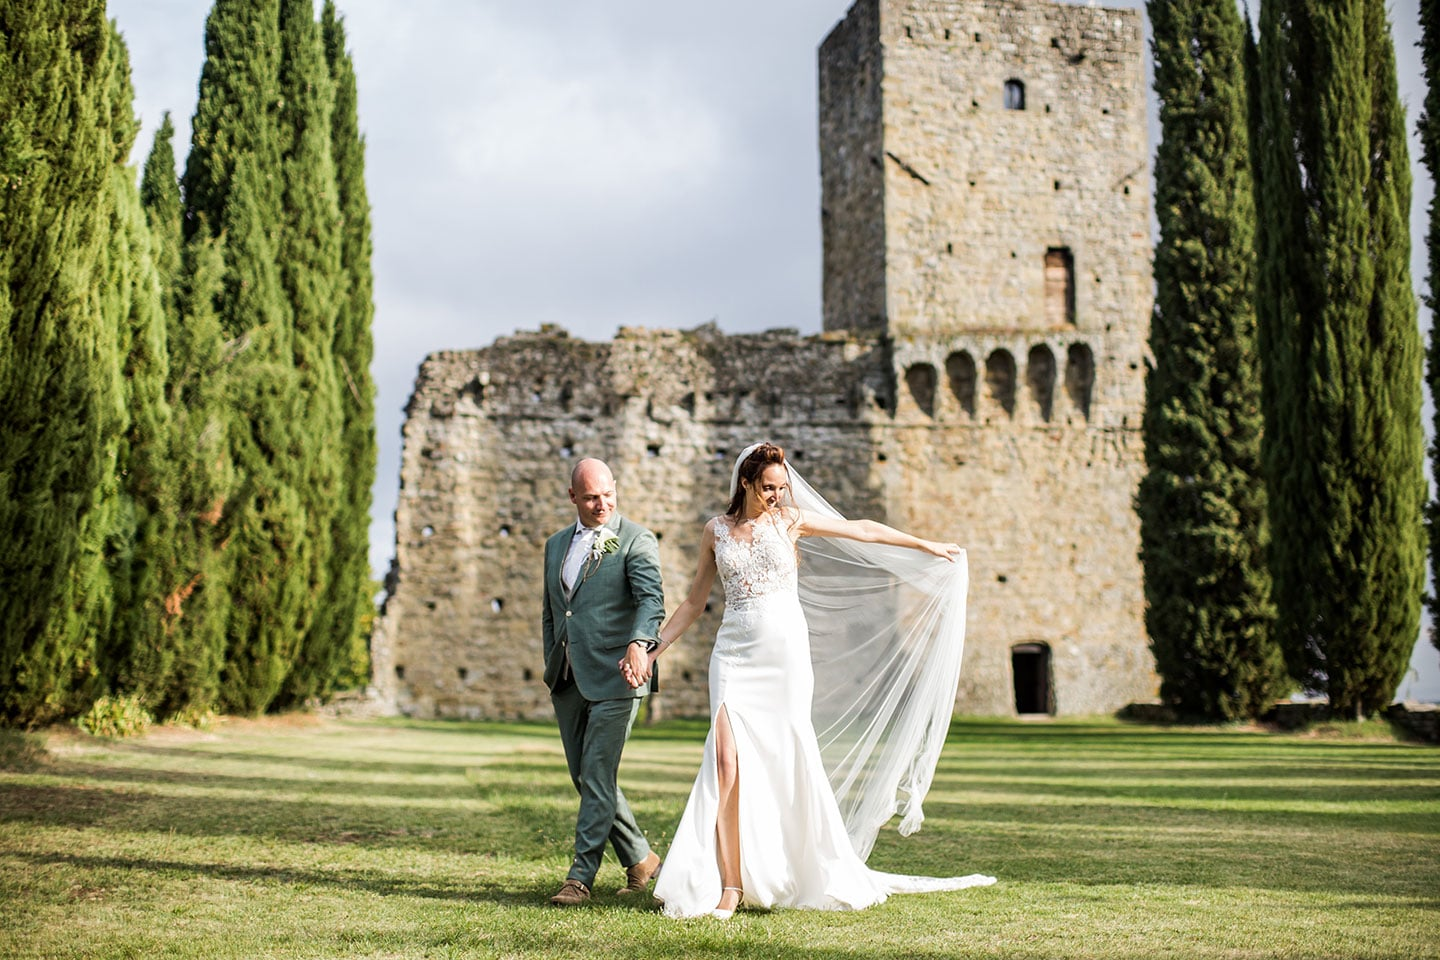 Wedding photography Tuscany at medieval castle